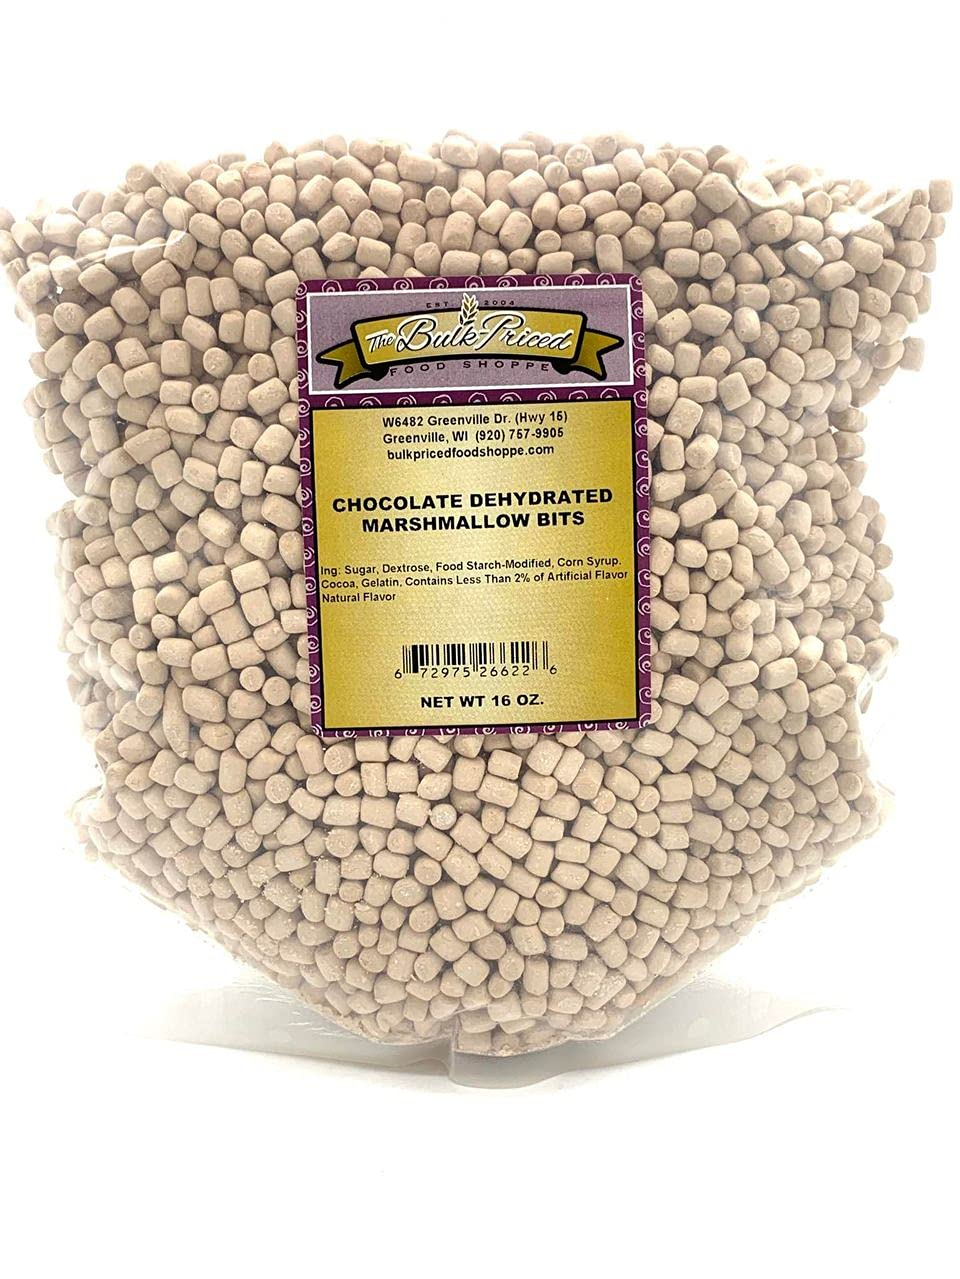 Weekly update Chocolate Dehydrated Marshmallow Bits Size Marshma Bulk Denver Mall Cereal